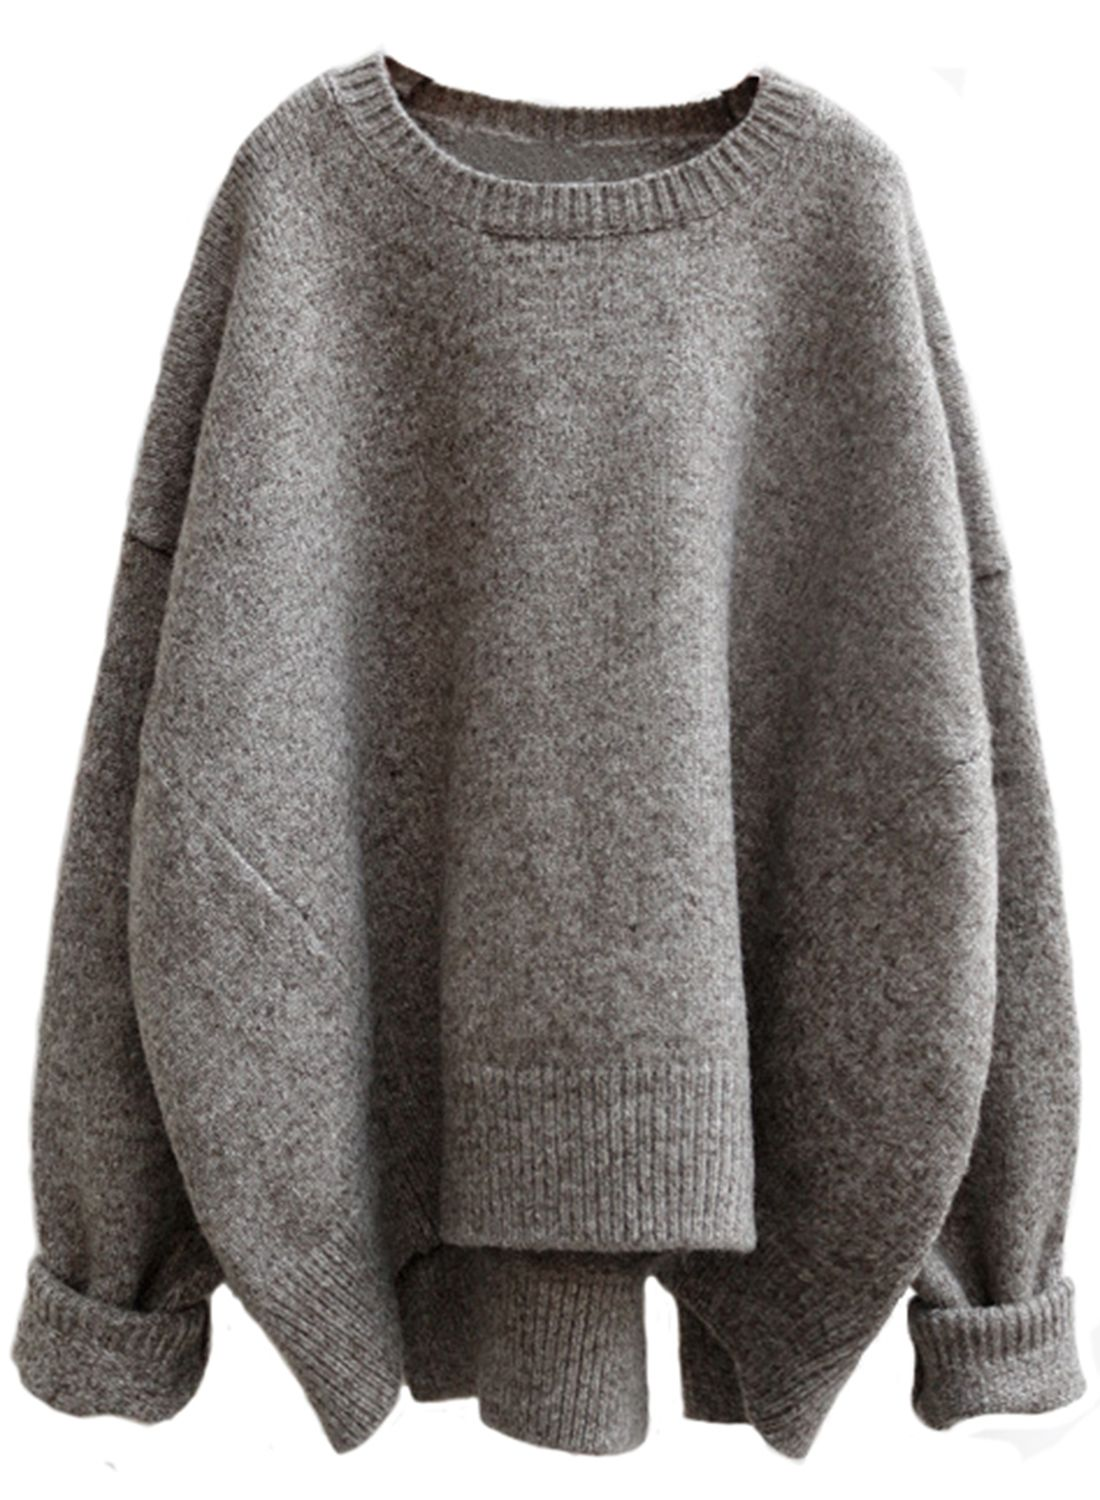 Heathered Round Neck Asymmetric Knit Sweater - AZBRO.com ...